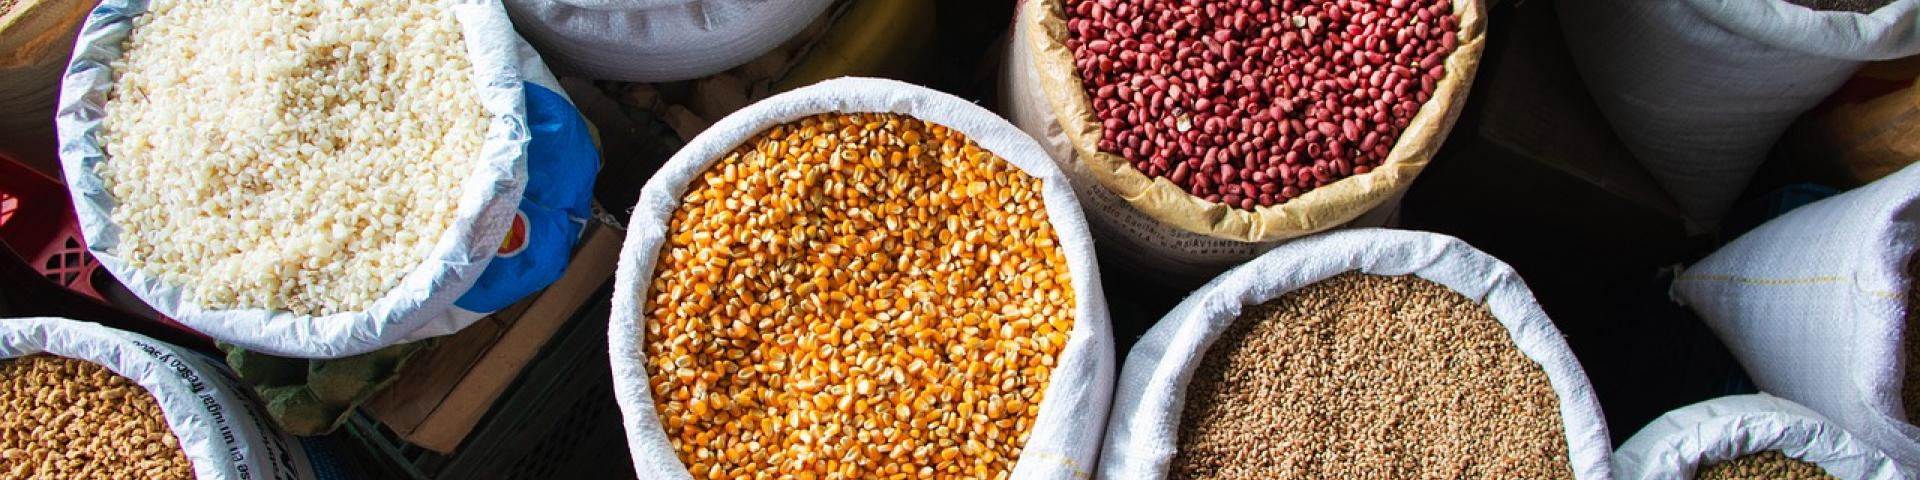 Grains and pulses in bags